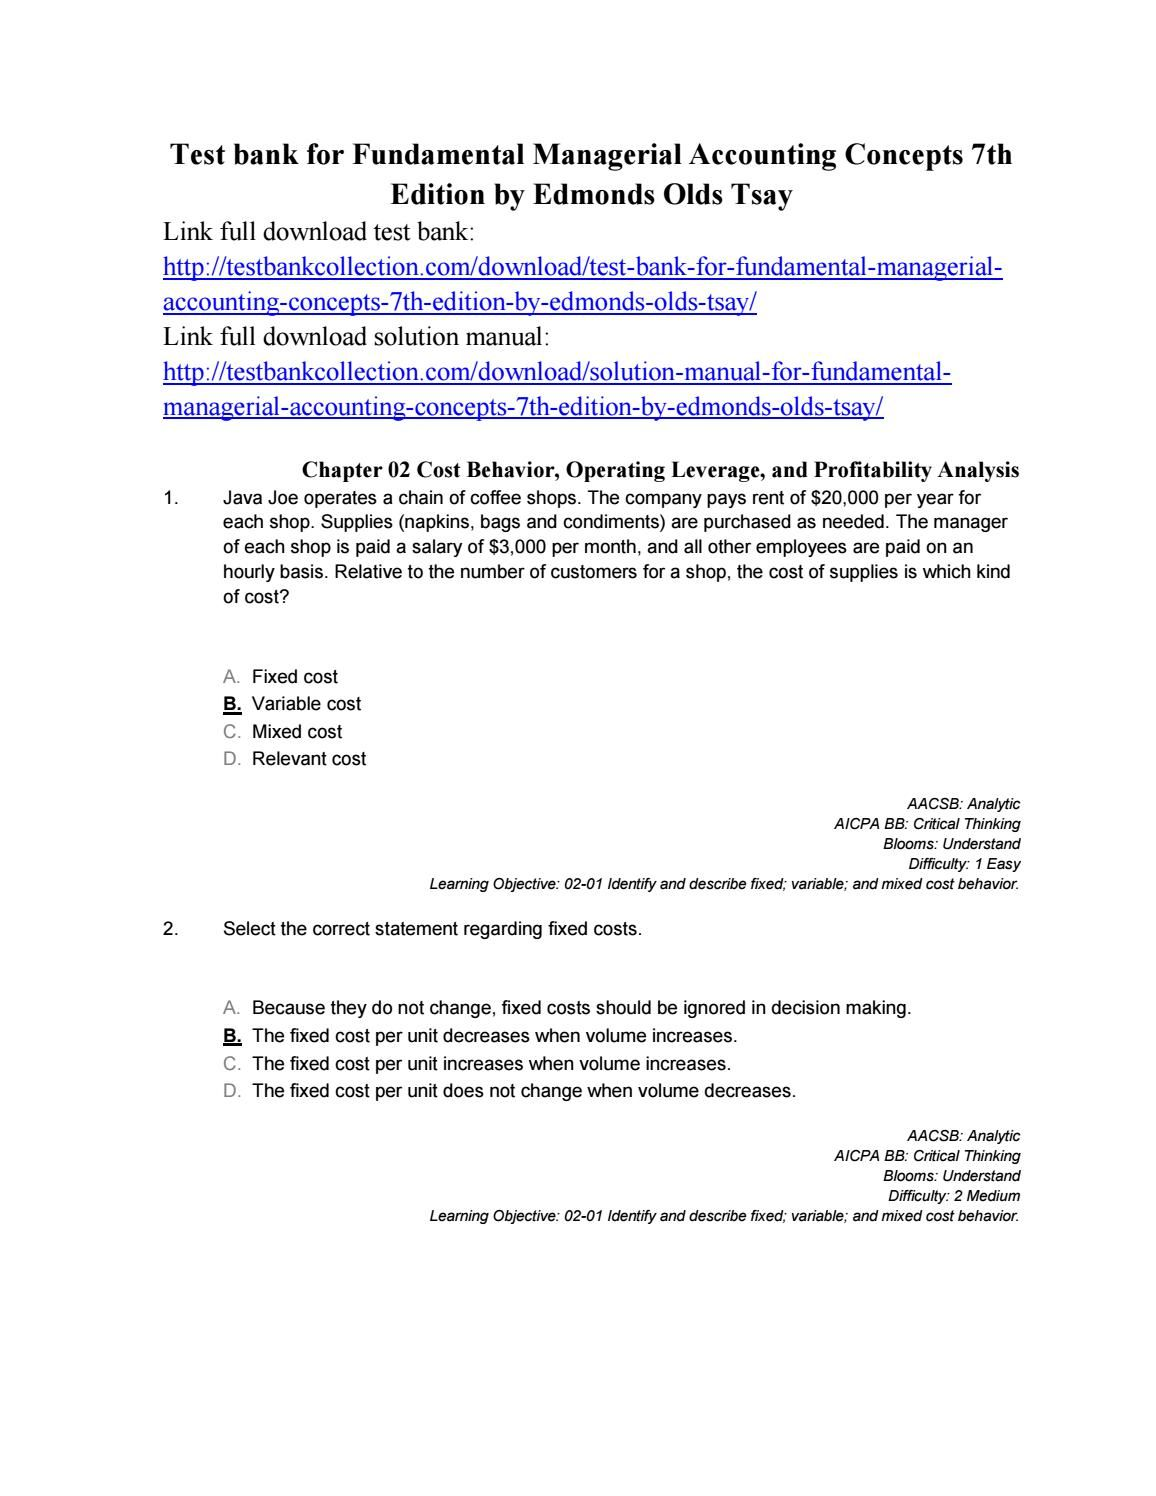 Download test bank for fundamental managerial accounting concepts ...